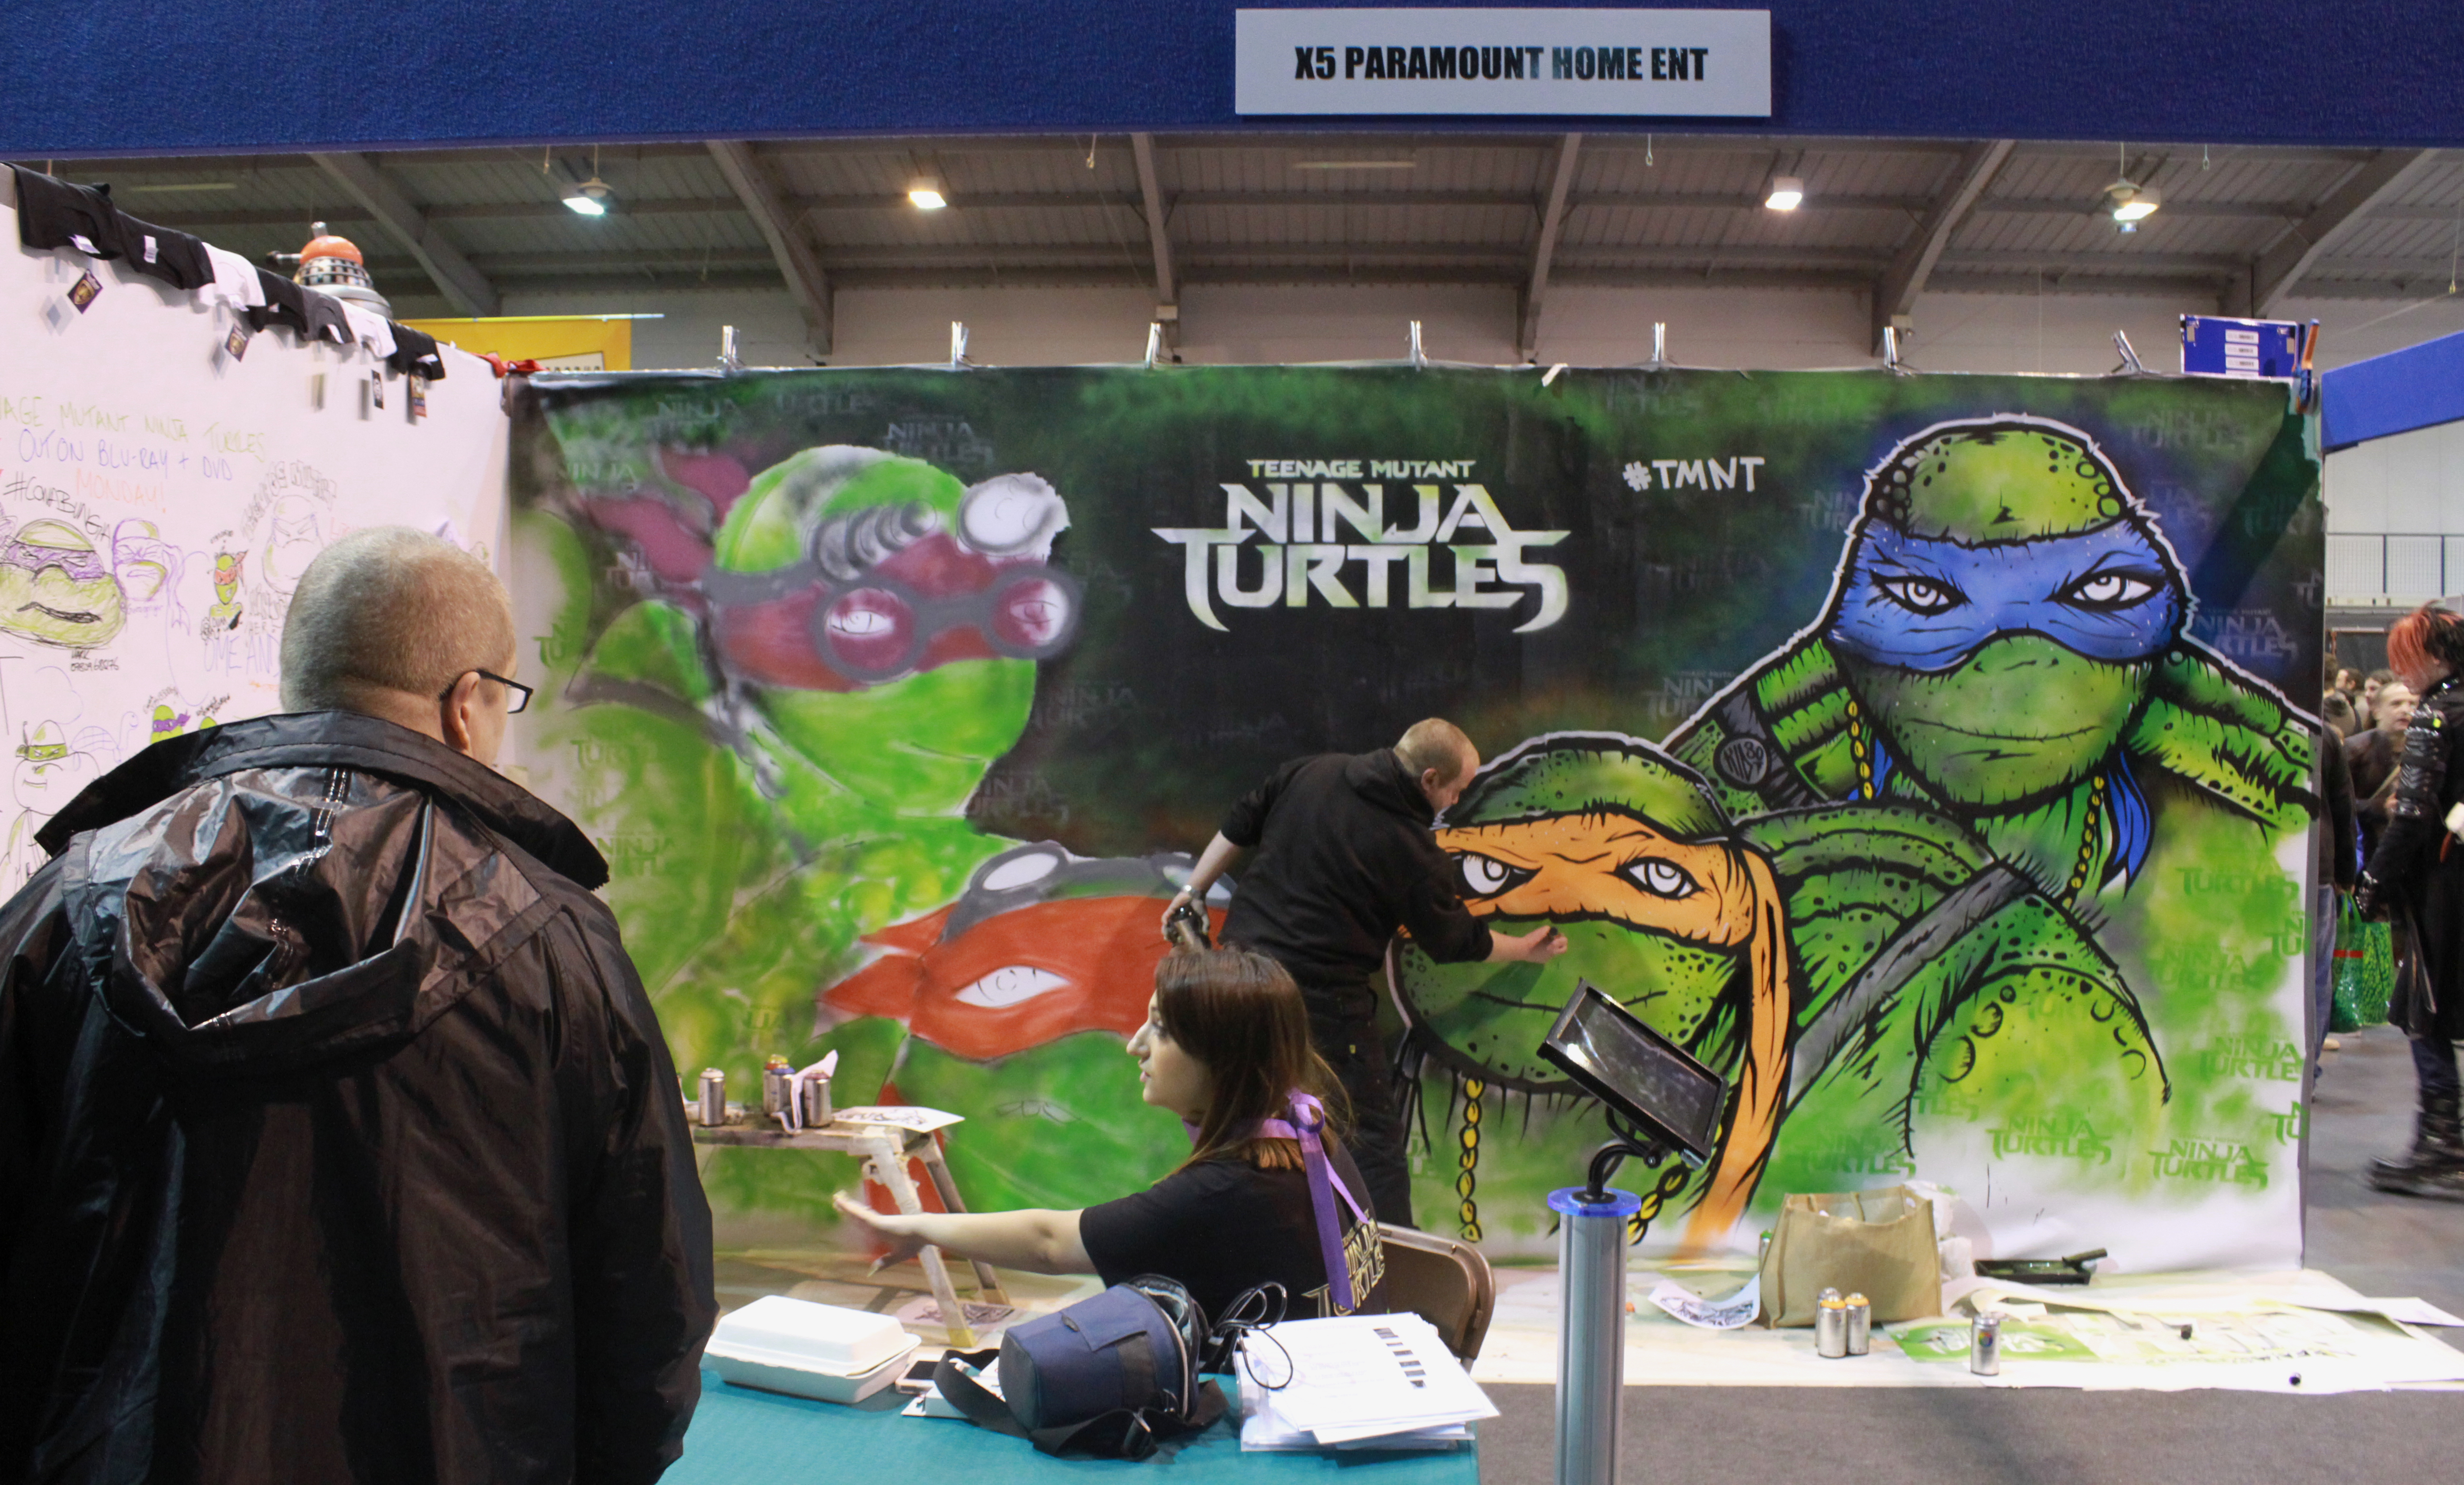 Kid30 doing his thing for TMNT. MCM Midlands, Feb 2015